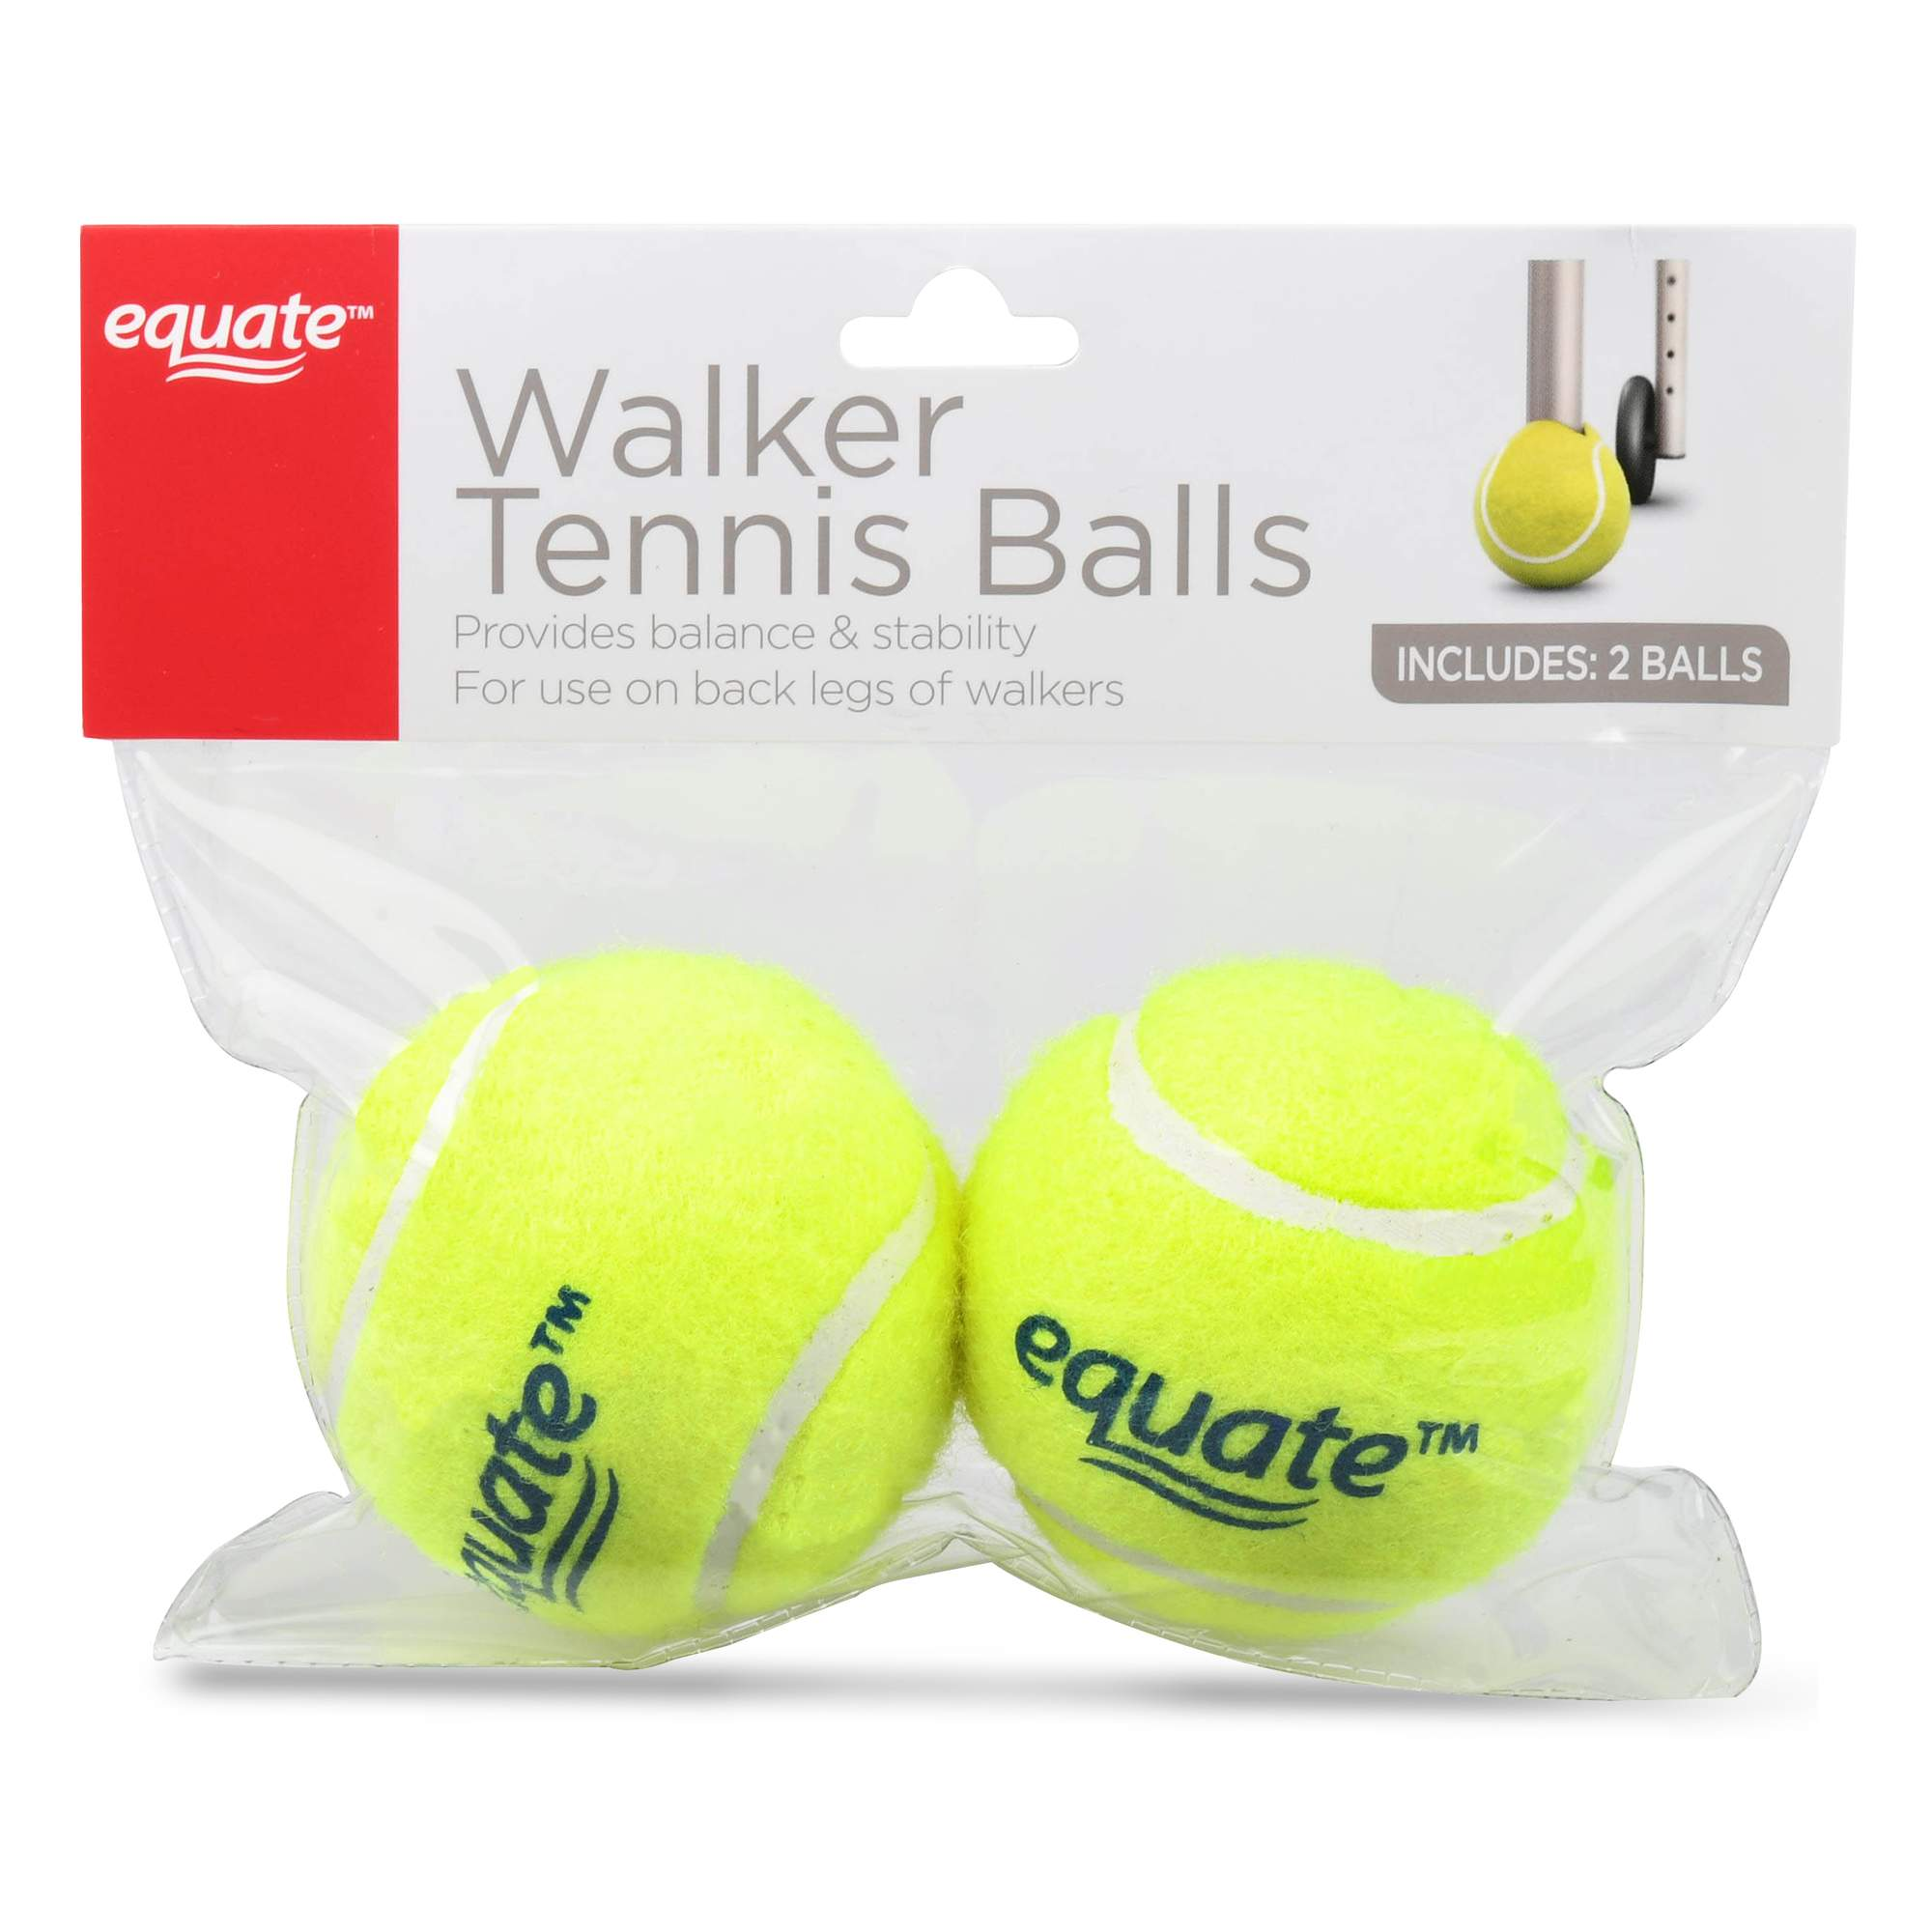 Equate Walker Tennis Balls, 2 Ct by Wal-Mart Stores, Inc.